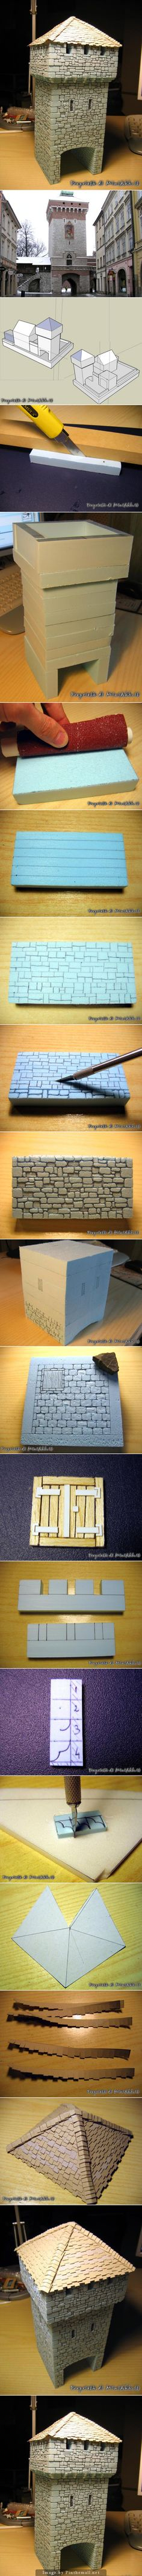 Nice step by step illustration of building simple fantasy architecture from foam.